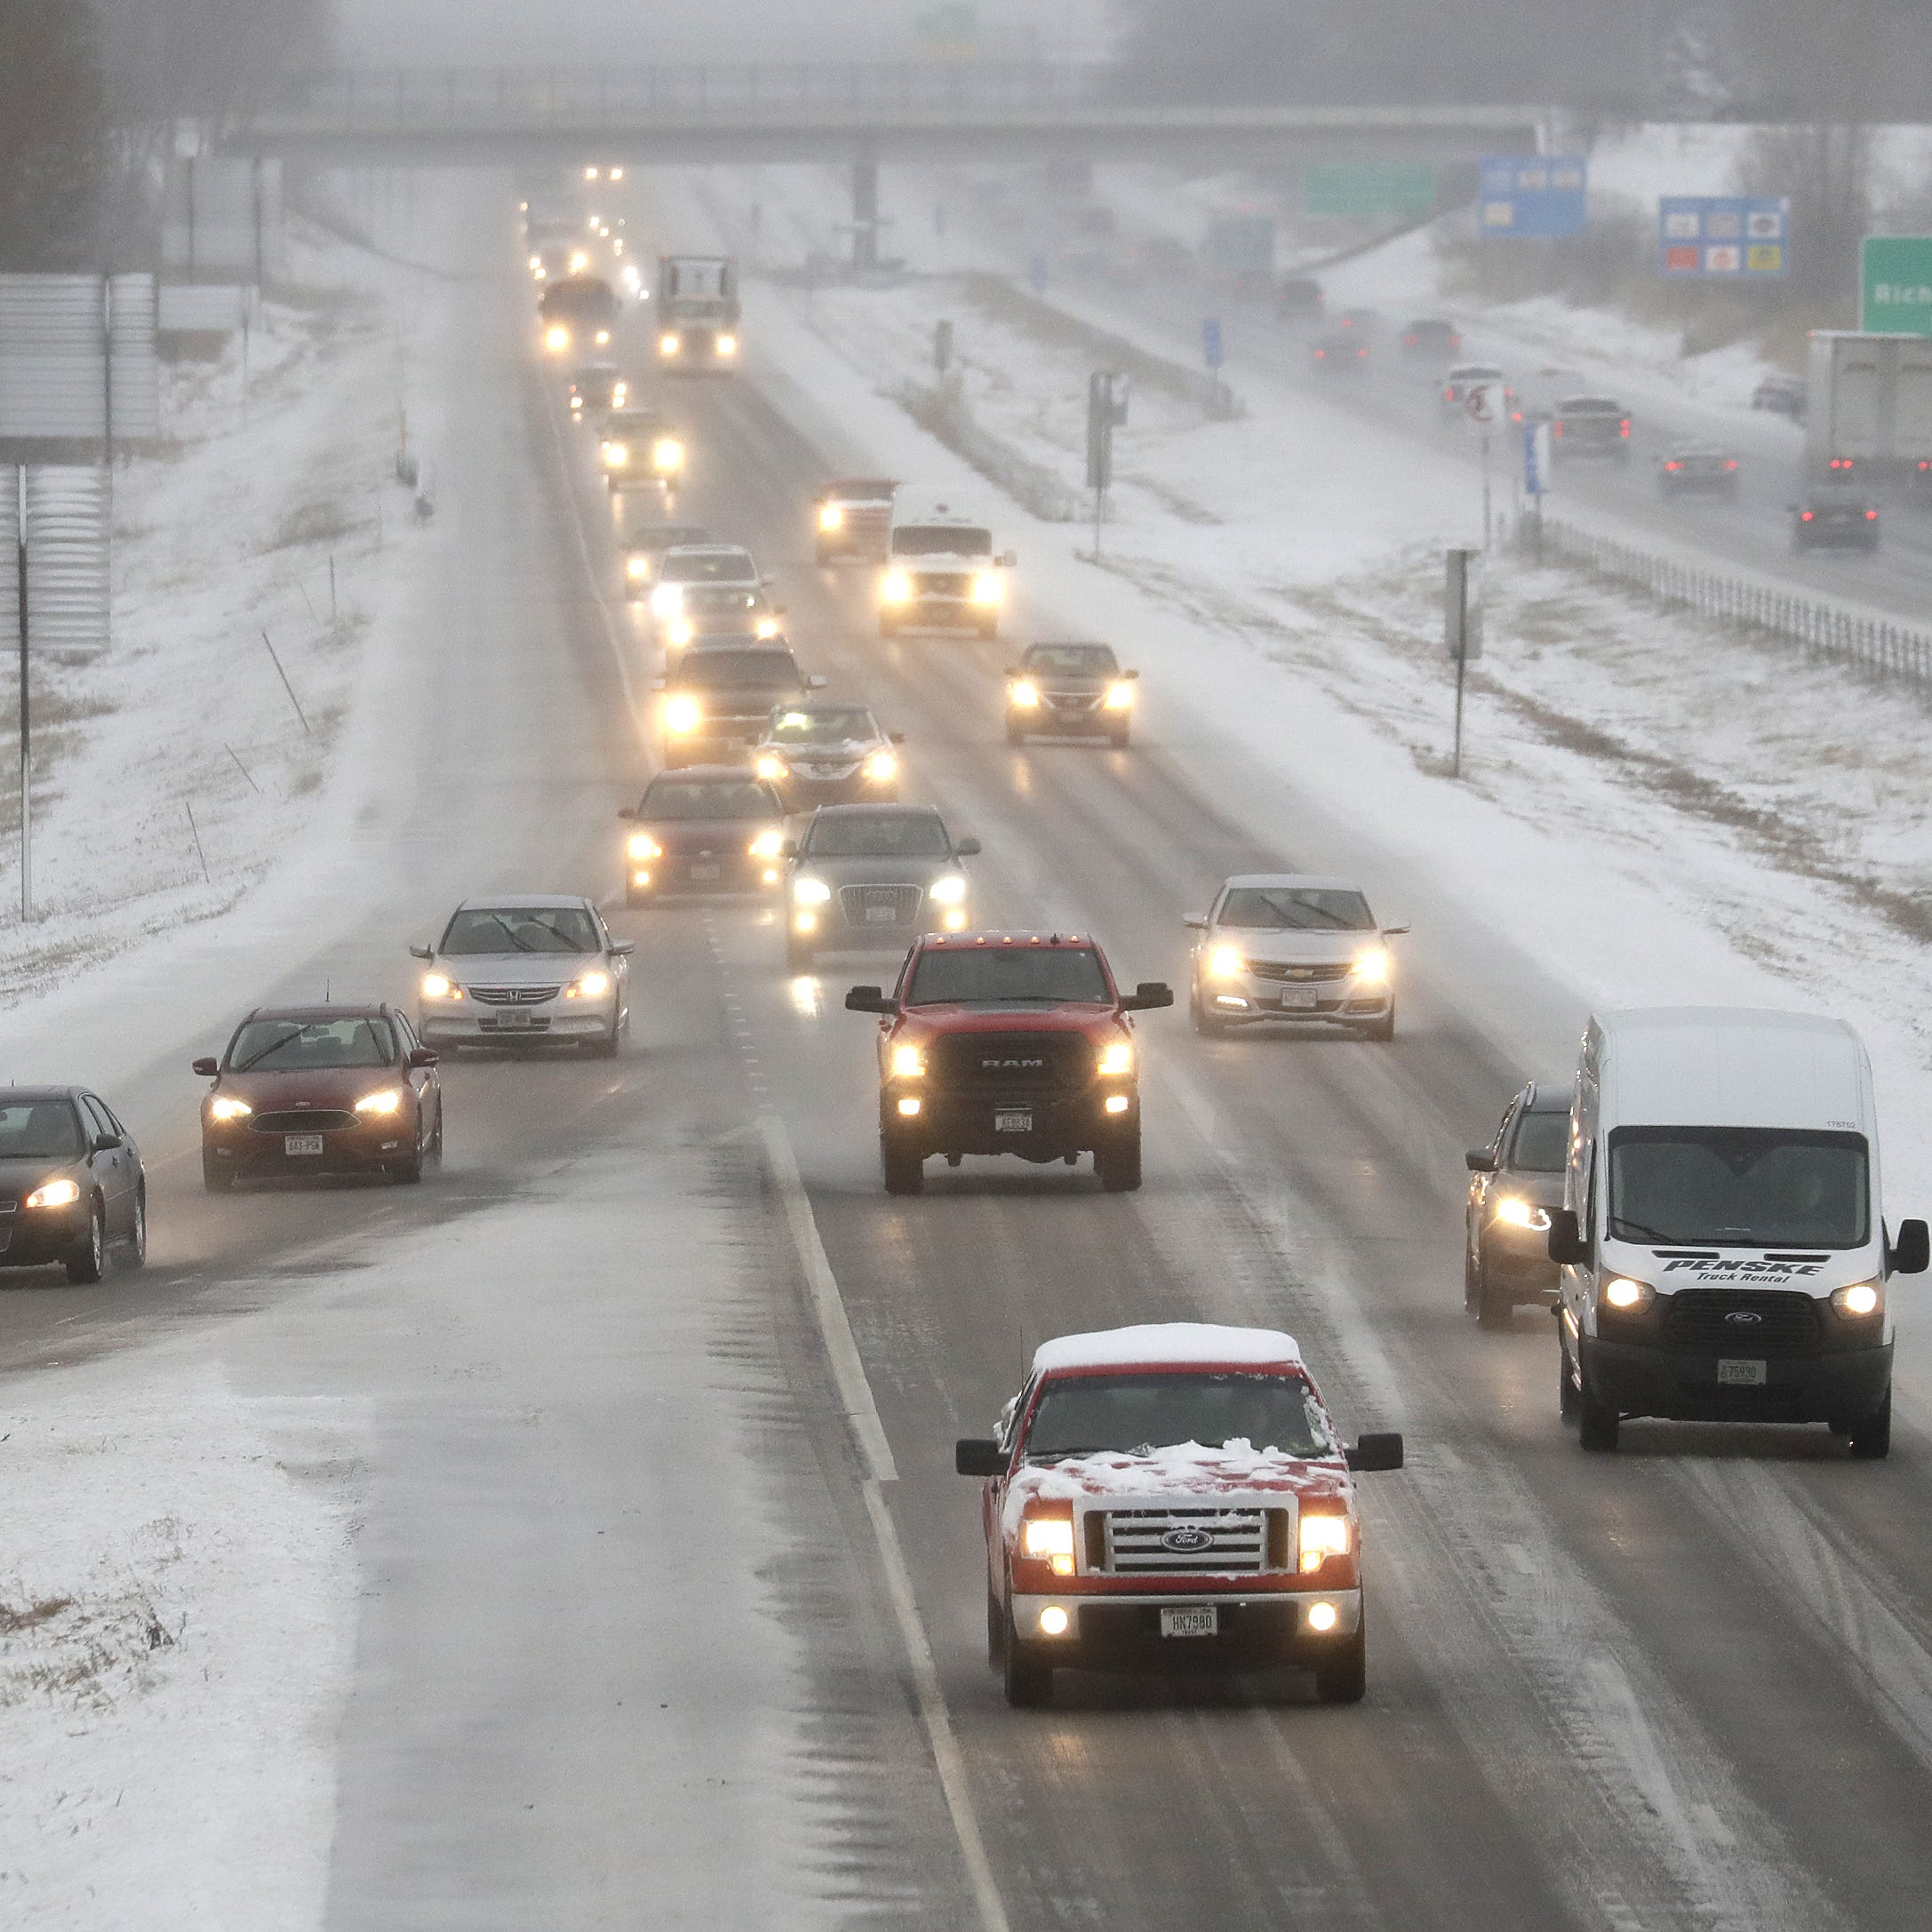 Thunder, snow, sleet, oh my! April storm makes a mess of Wisconsin roads